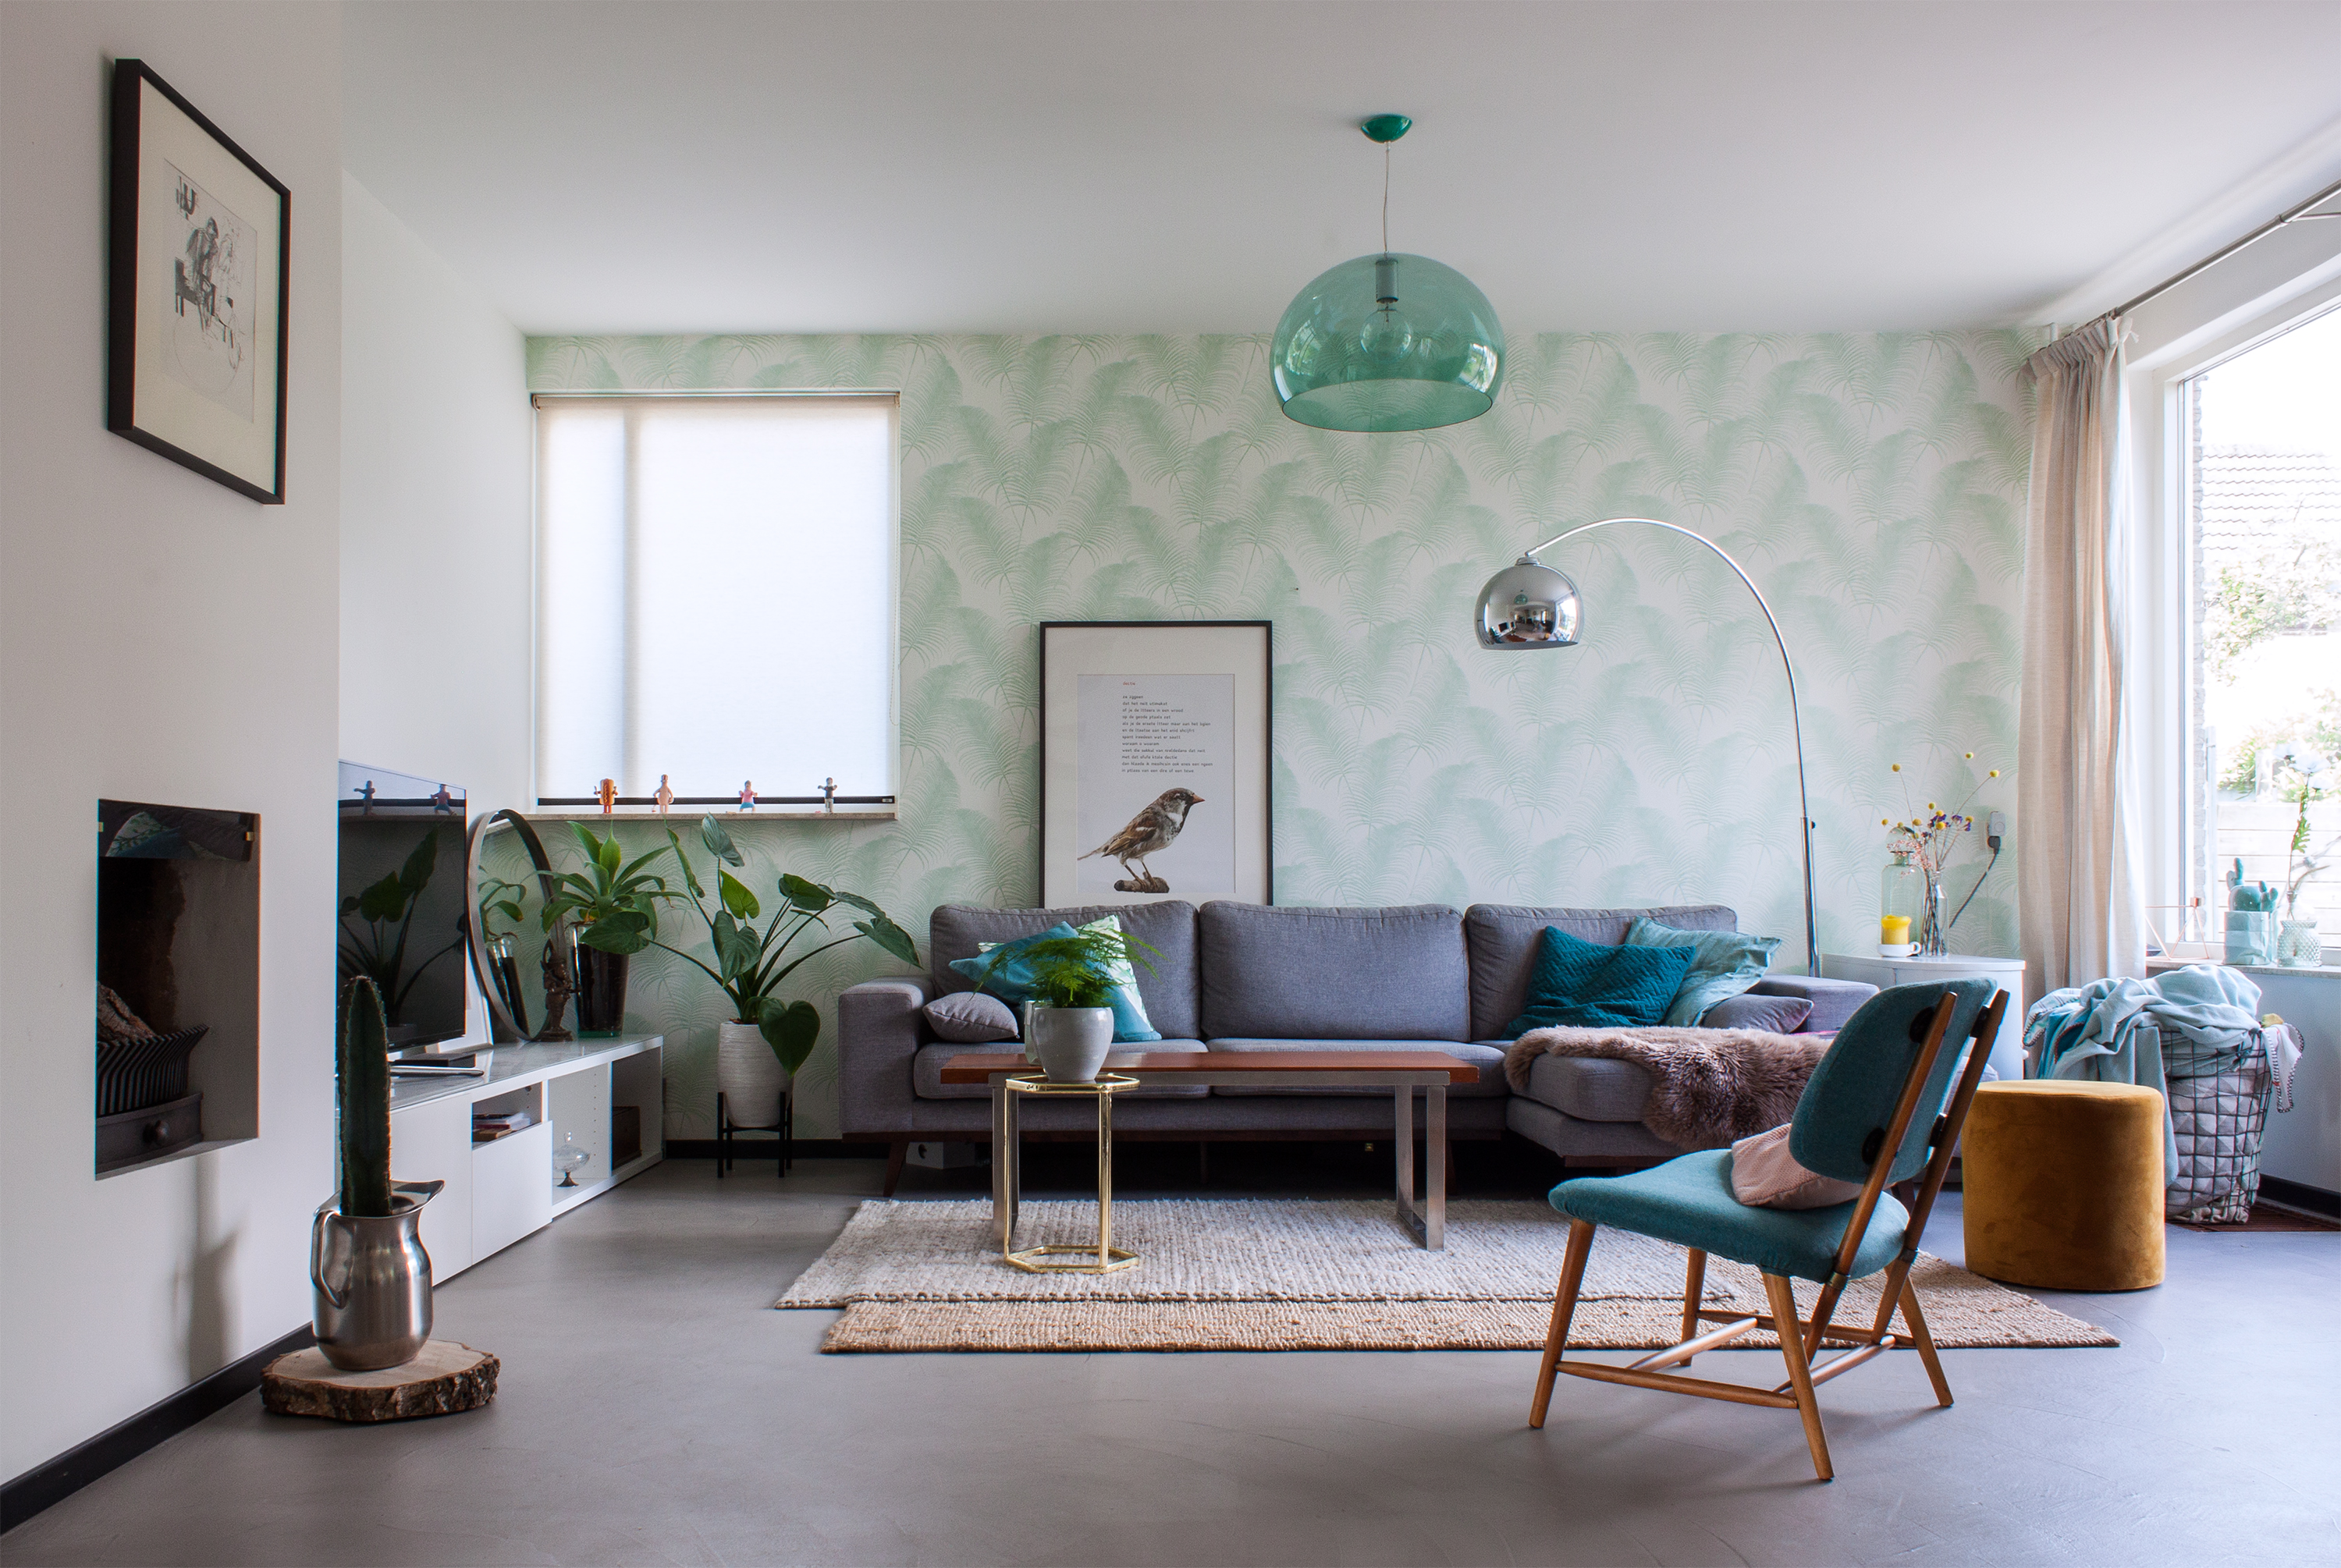 A dutch interior stylist reinvents her childhood home